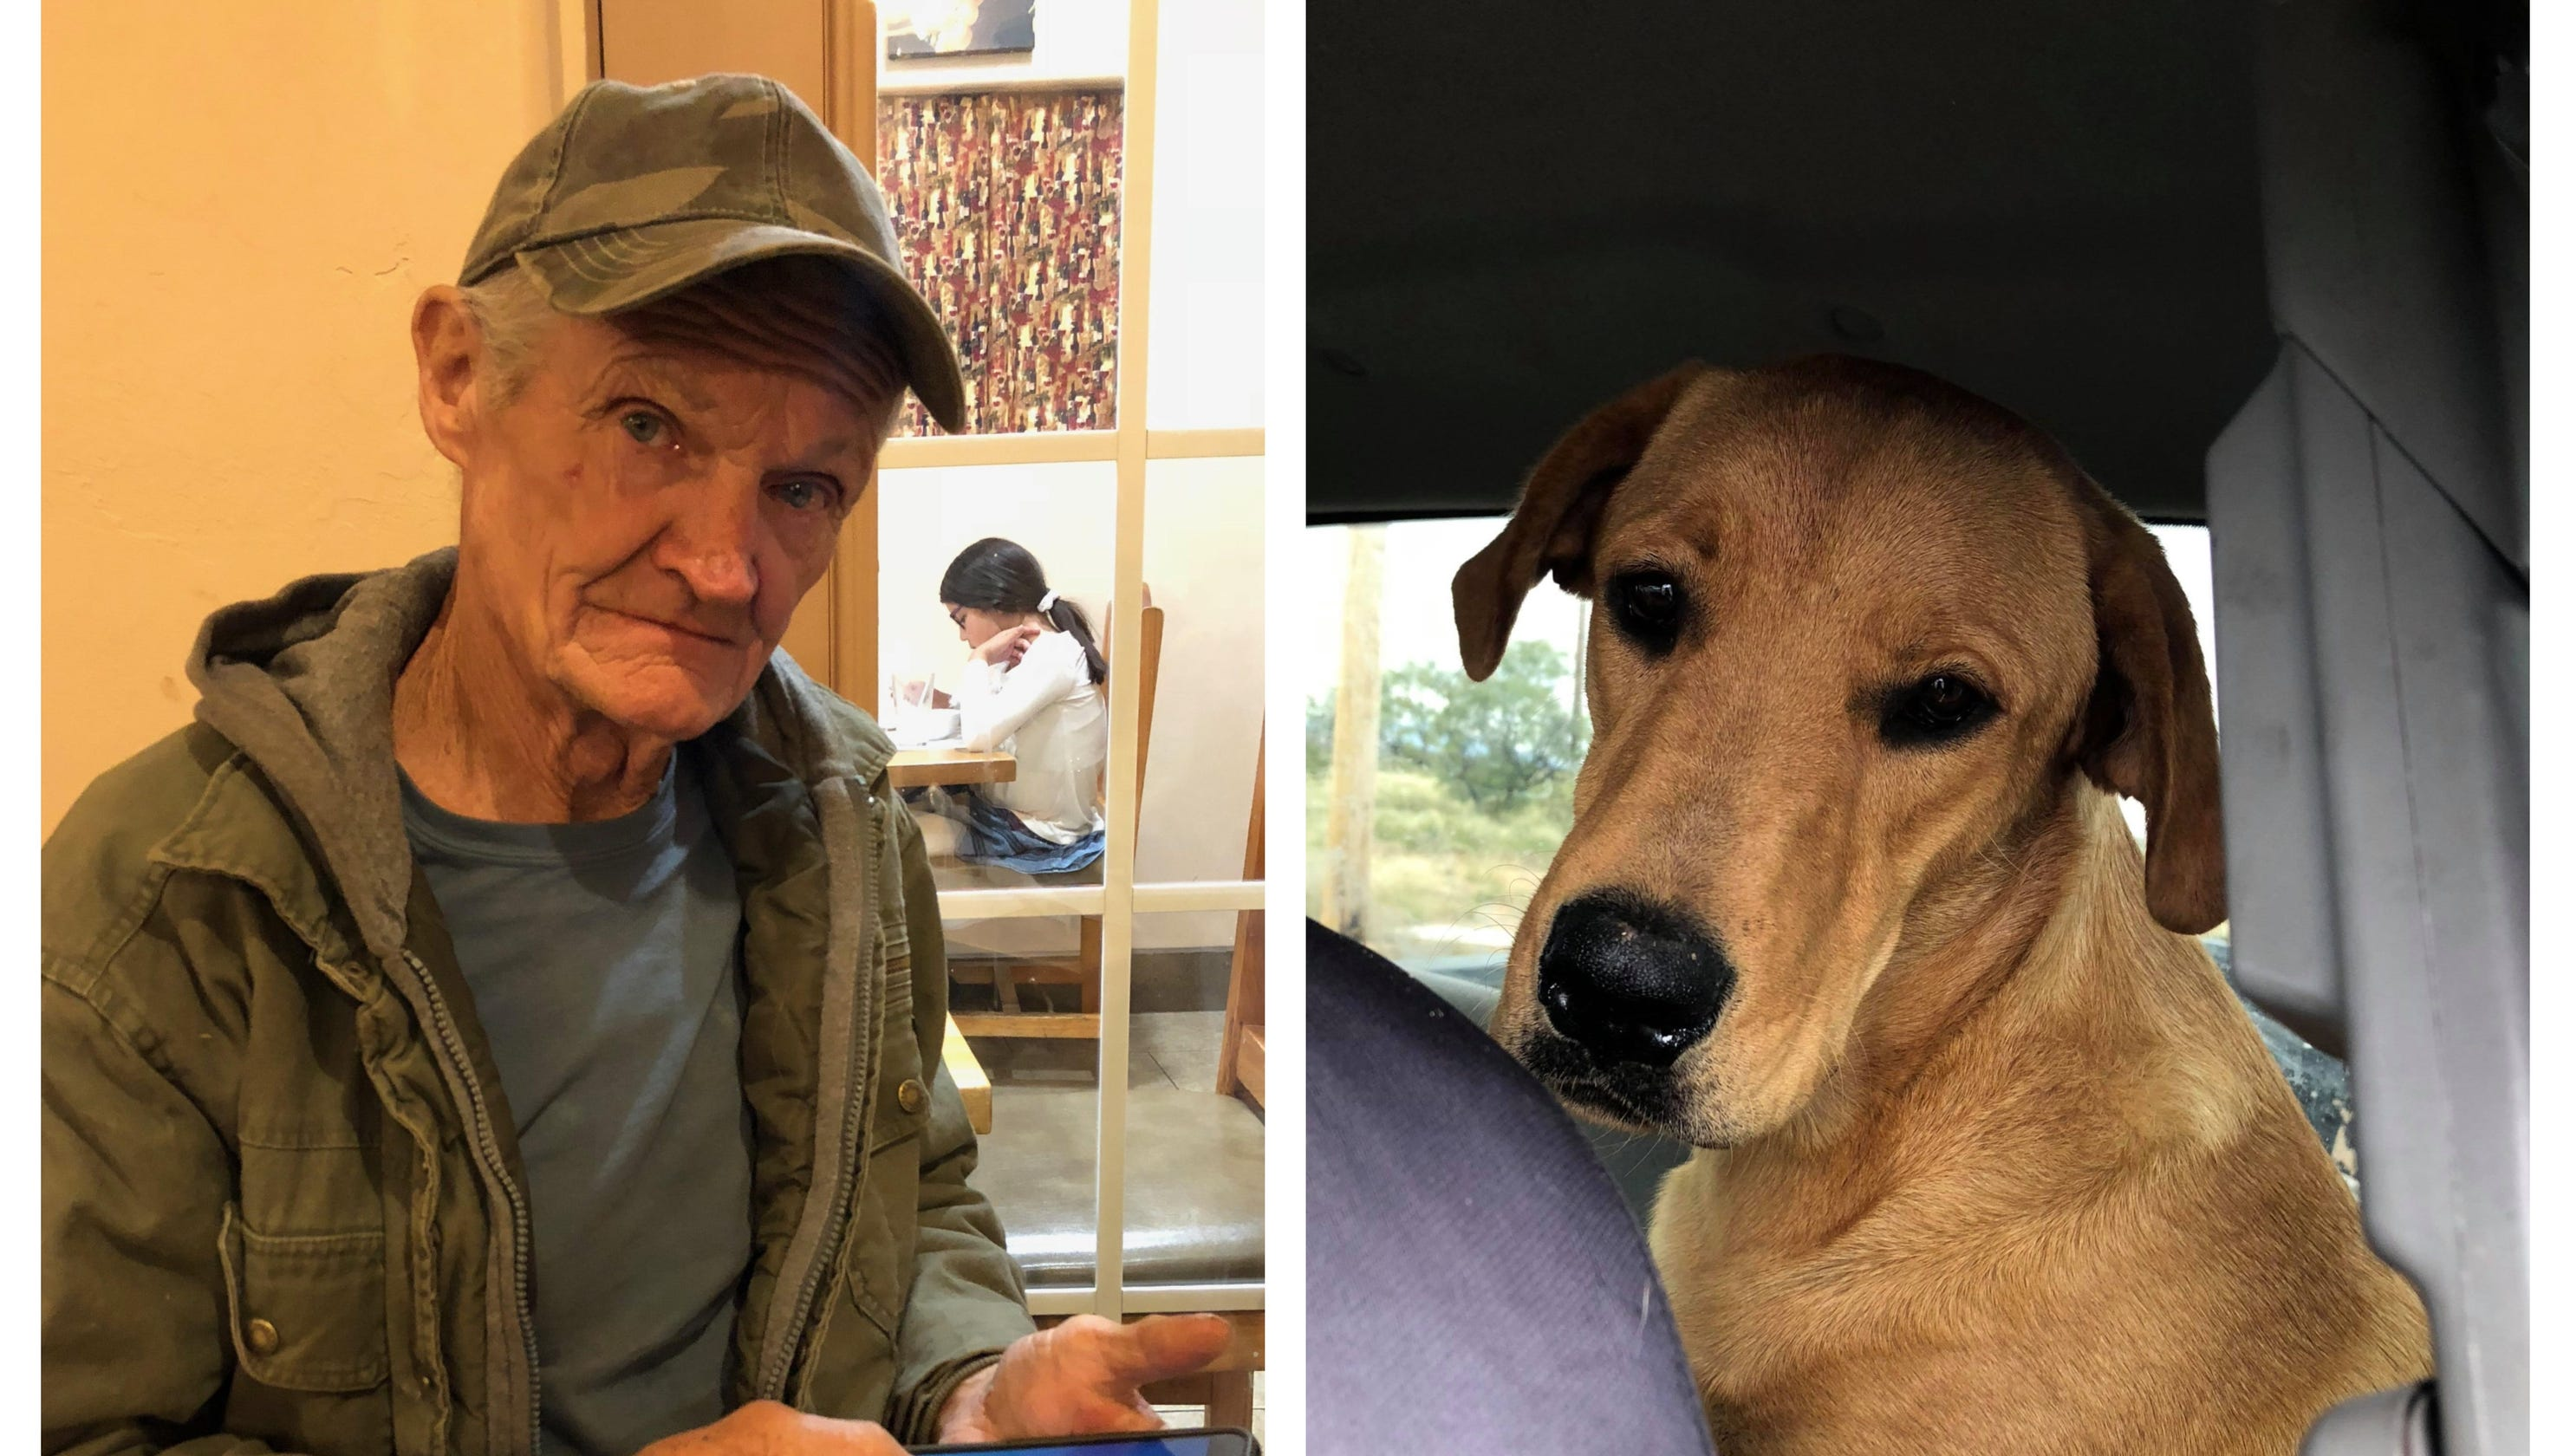 A Man And His Dog >> Dog Shoots His Owner In A Bizarre Hunting Accident In Las Cruces